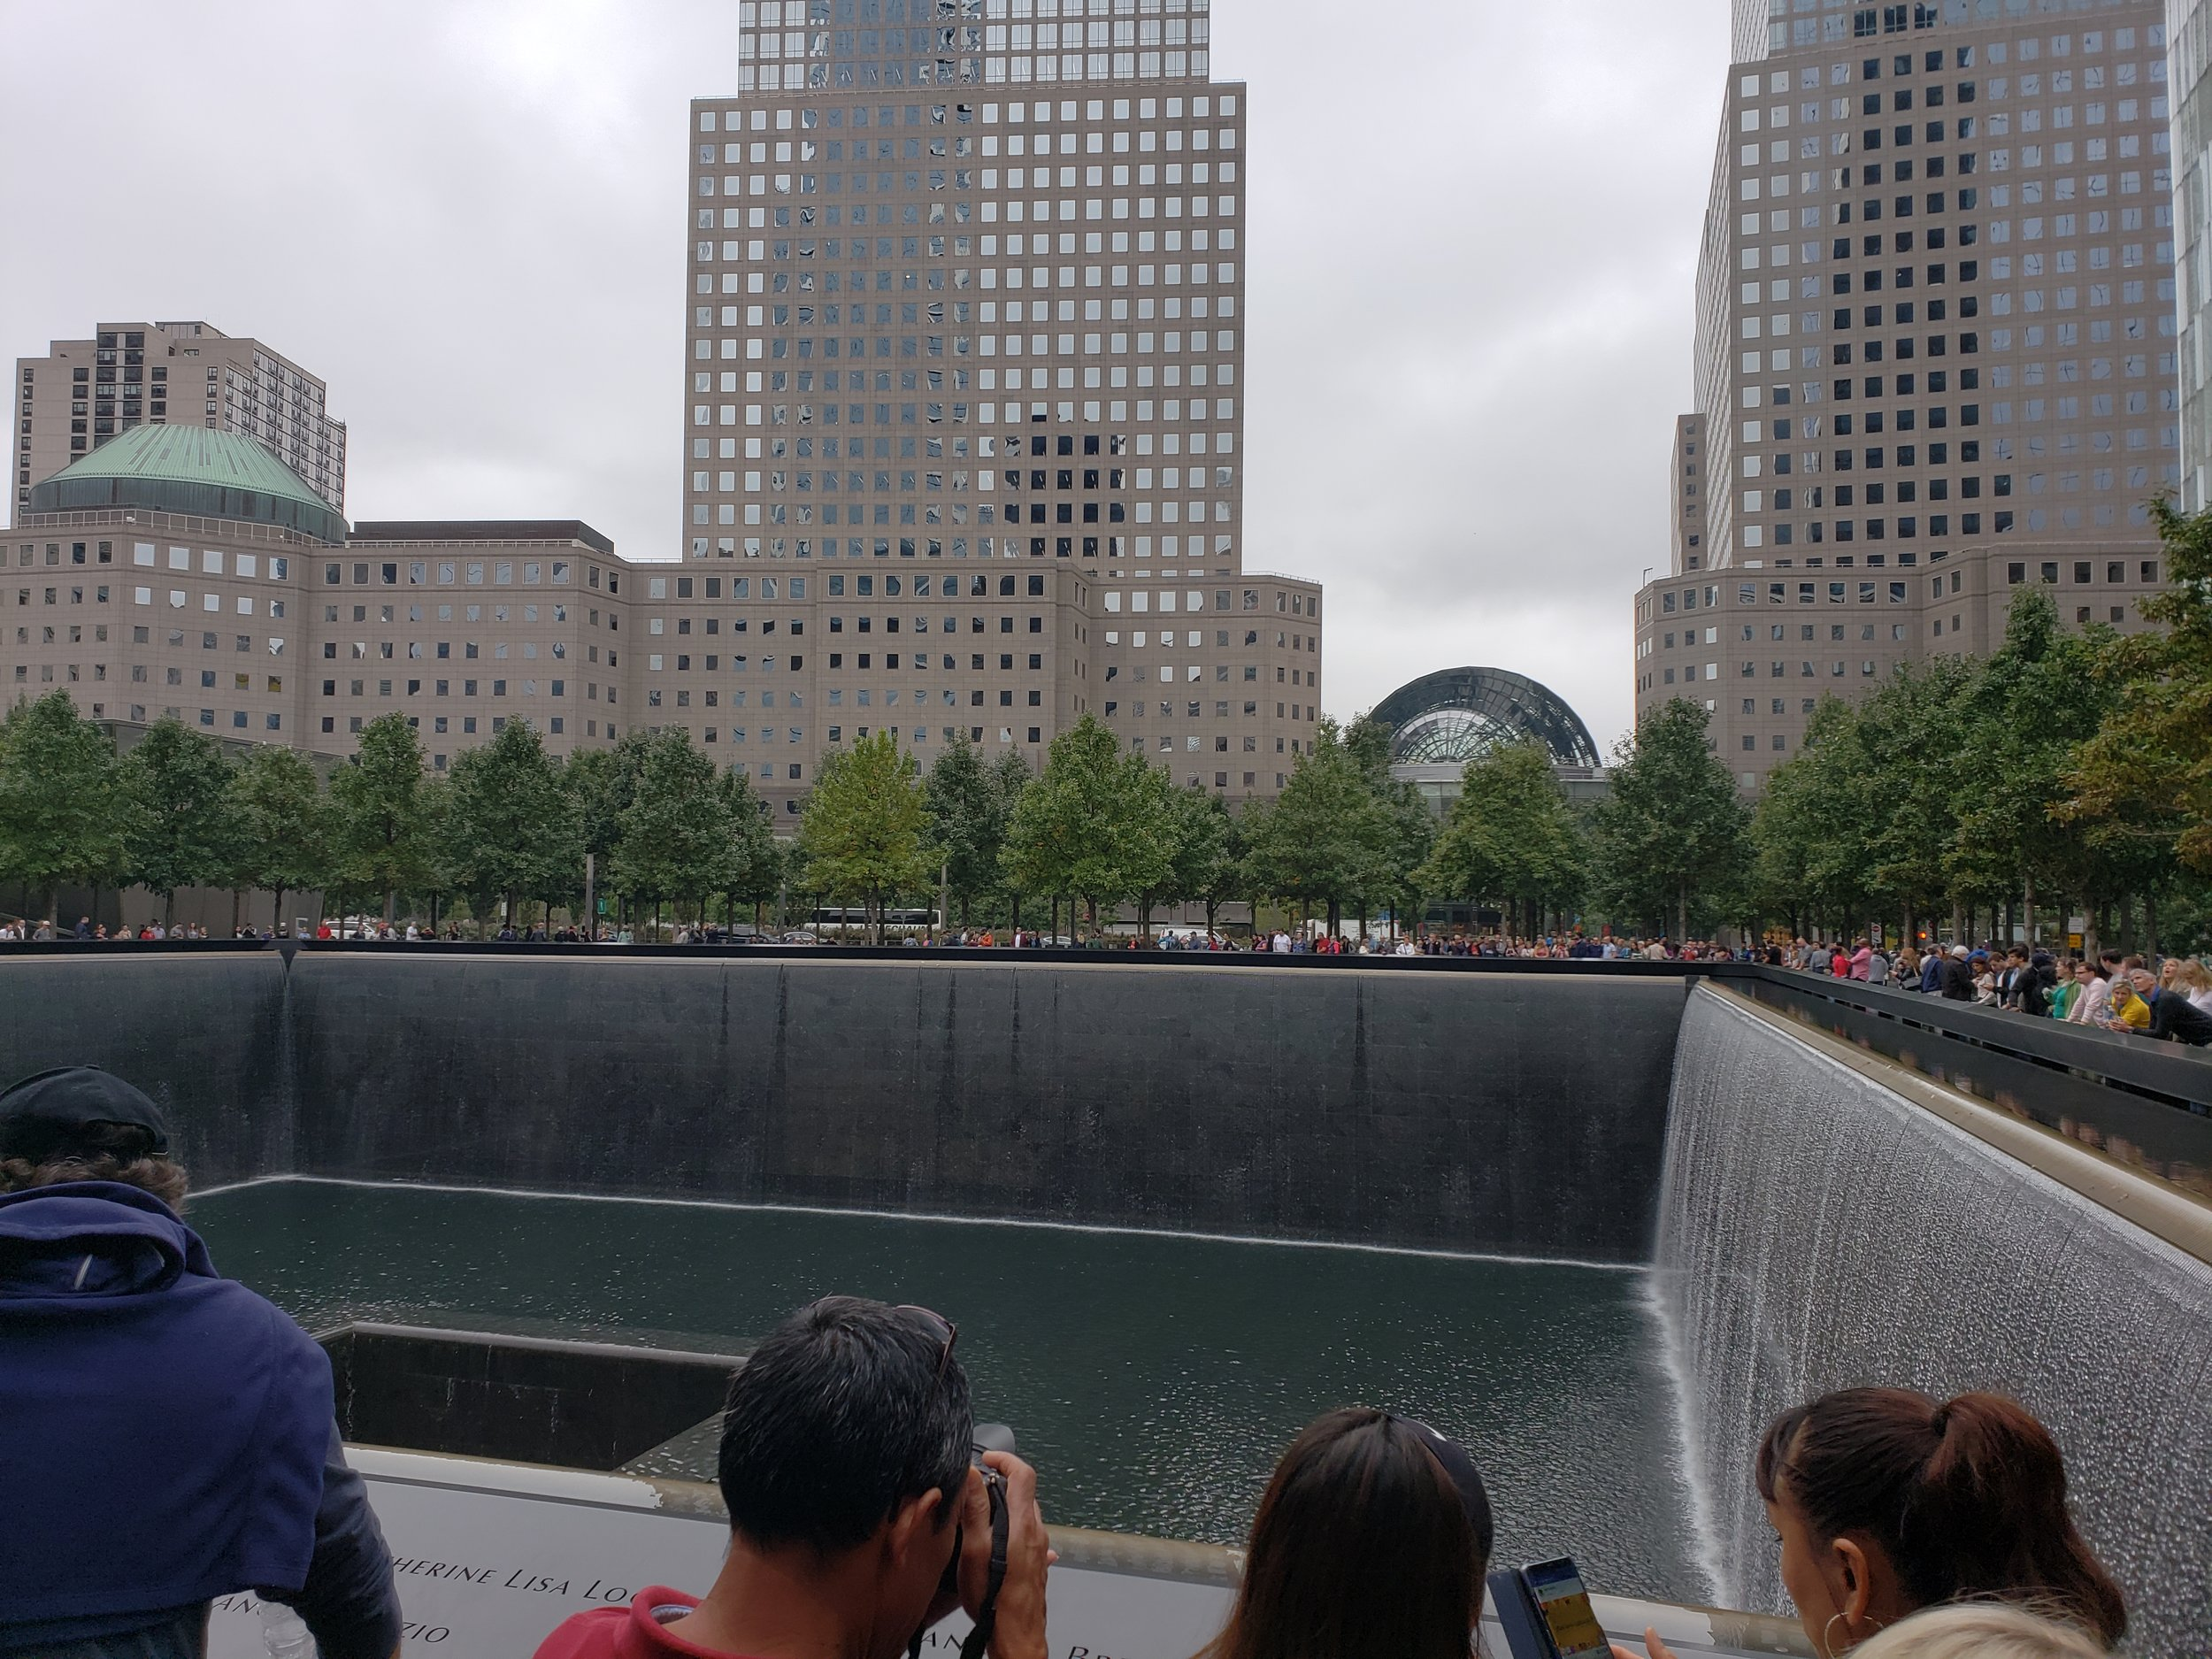 The sight where The Twin Towers once stood.